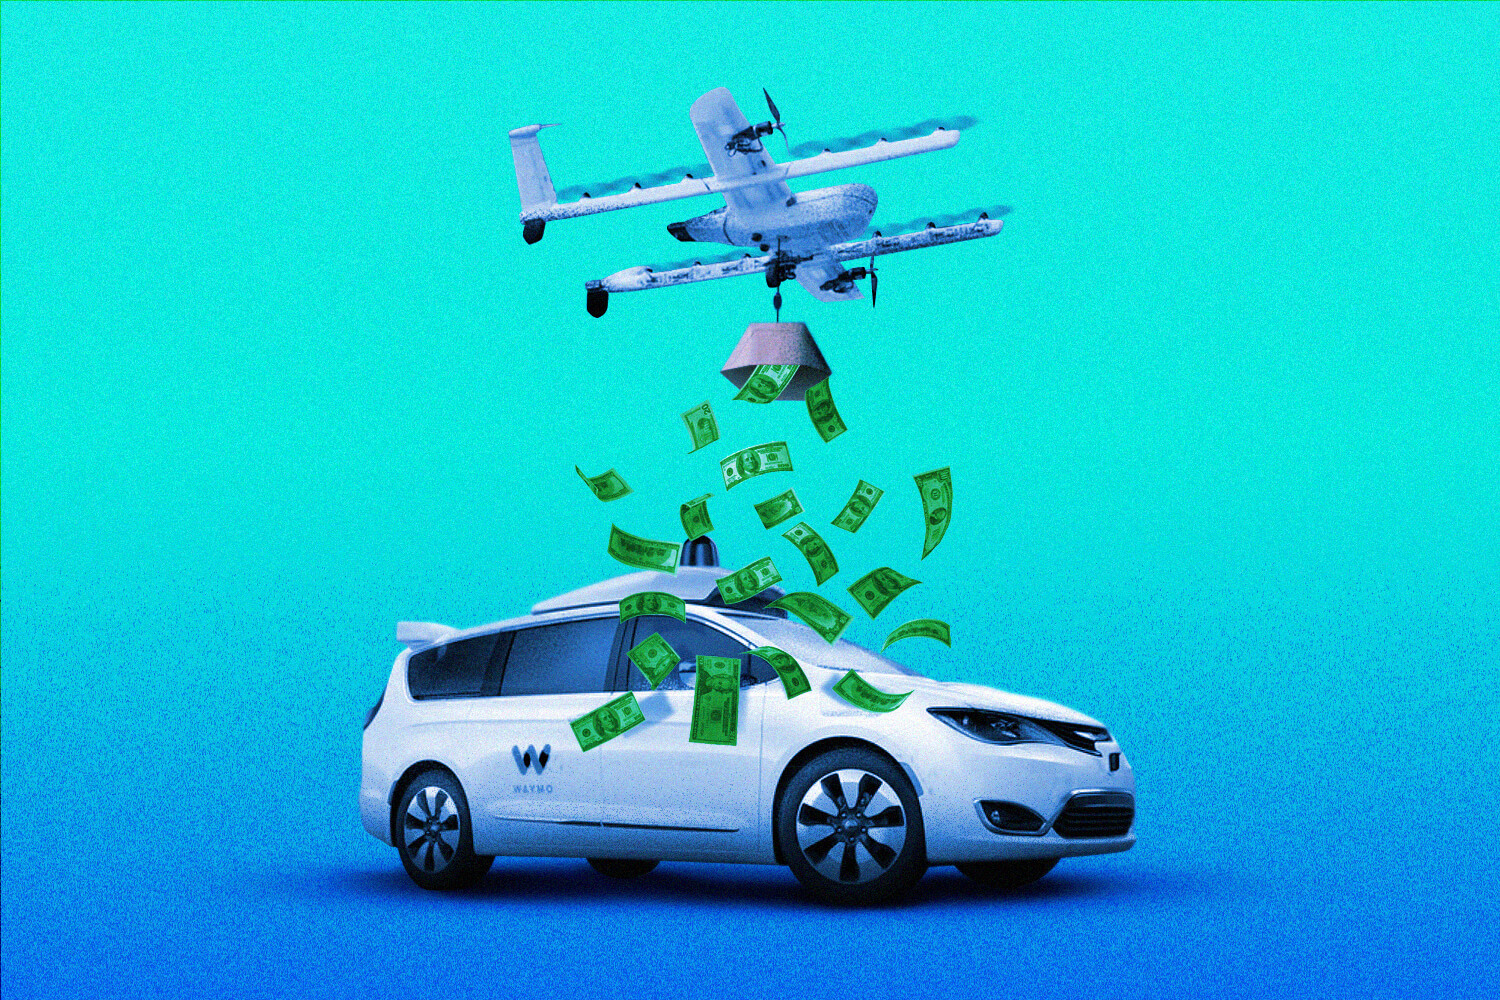 Not every robotaxi company gets Alphabet's Other Bets benefits Francis Scialabba